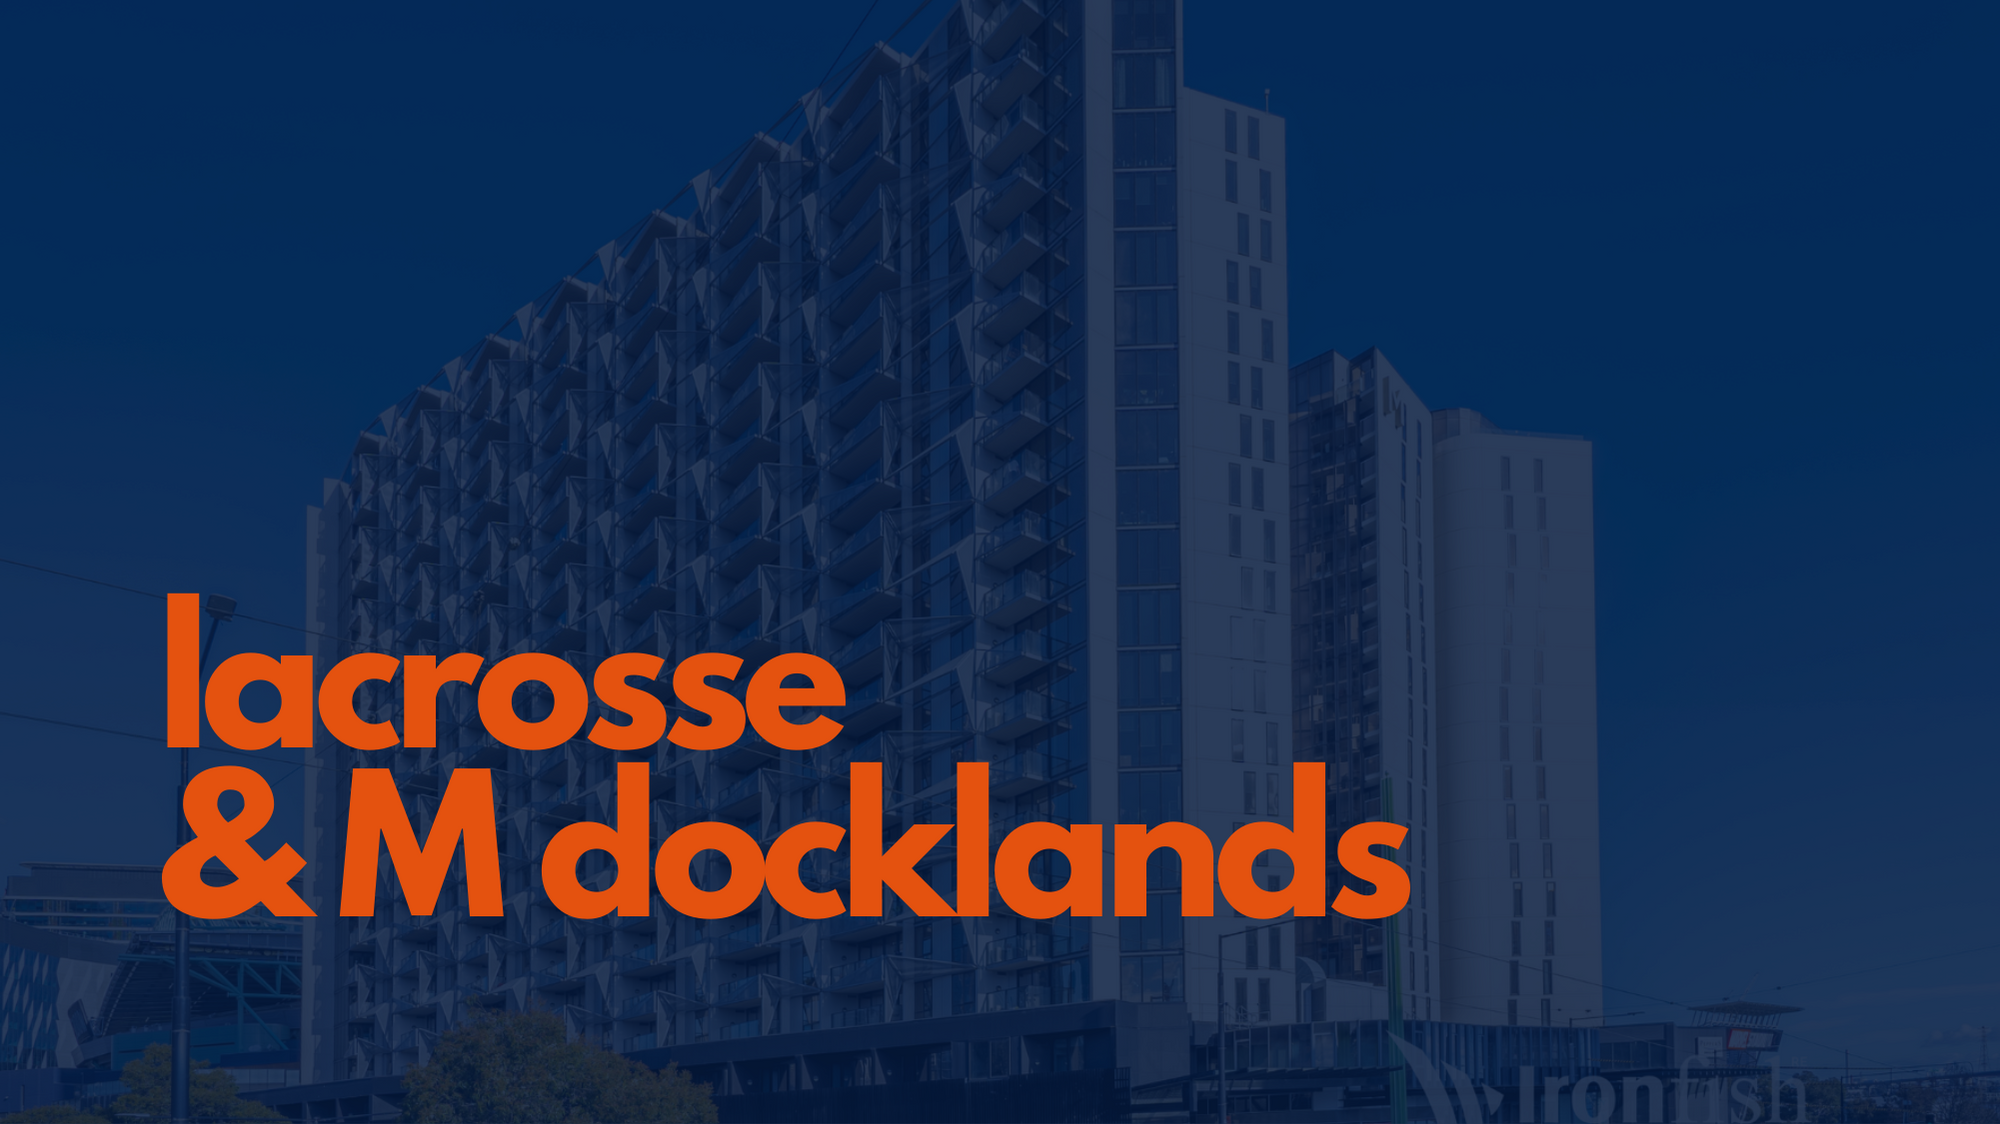 Lacrosse and M Docklands